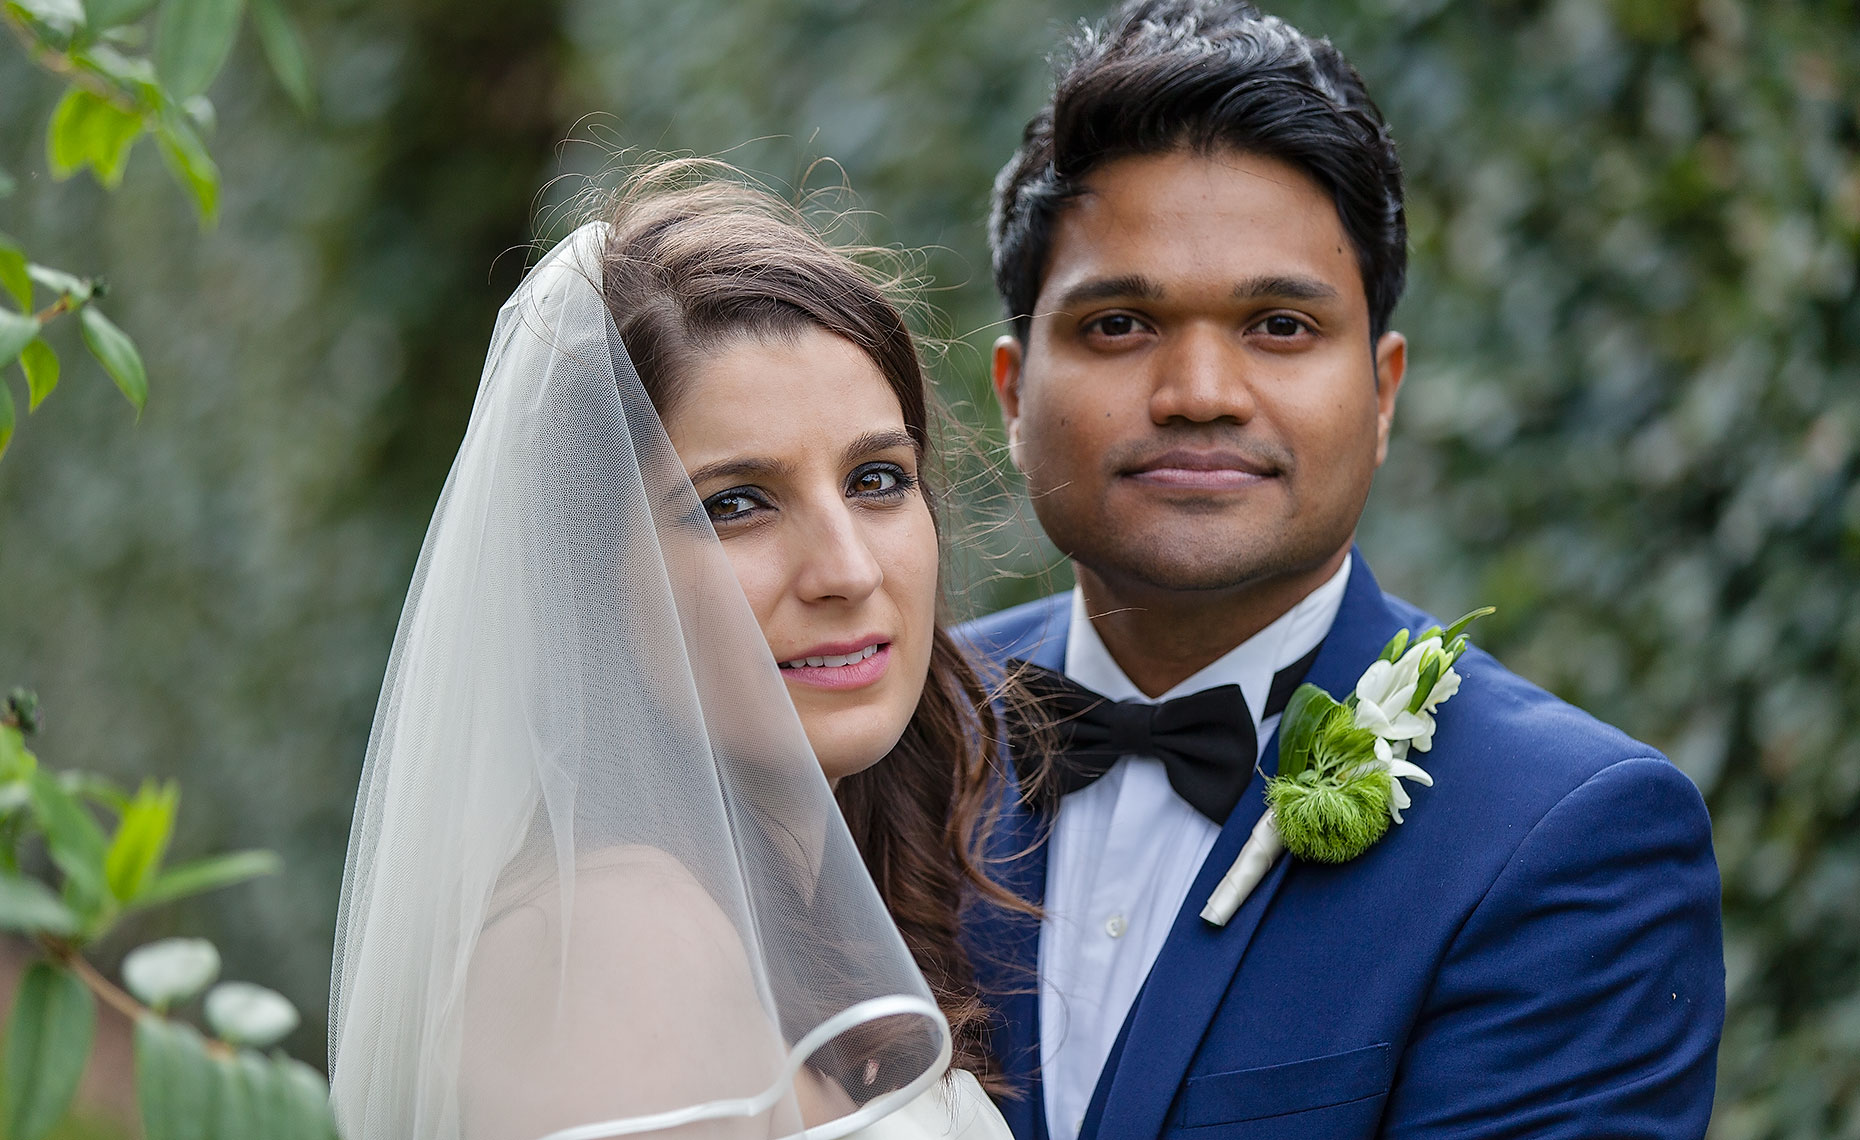 Groom with dark skin wearing blue suit standing next to beautiful bride with white veil in garden area